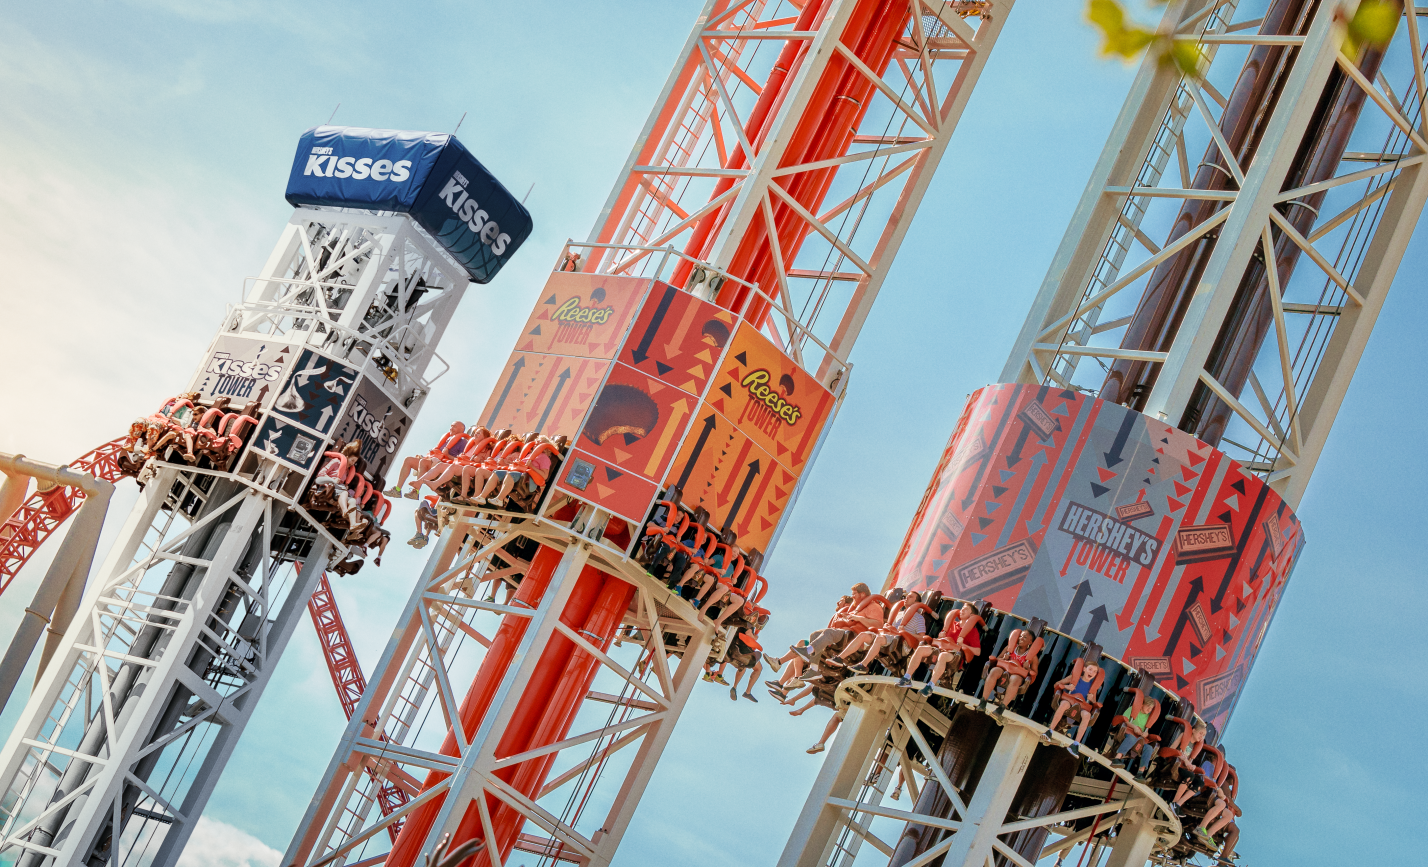 Season Pass Holders get early access to the new Hershey Triple Tower with extended Sweet Start.